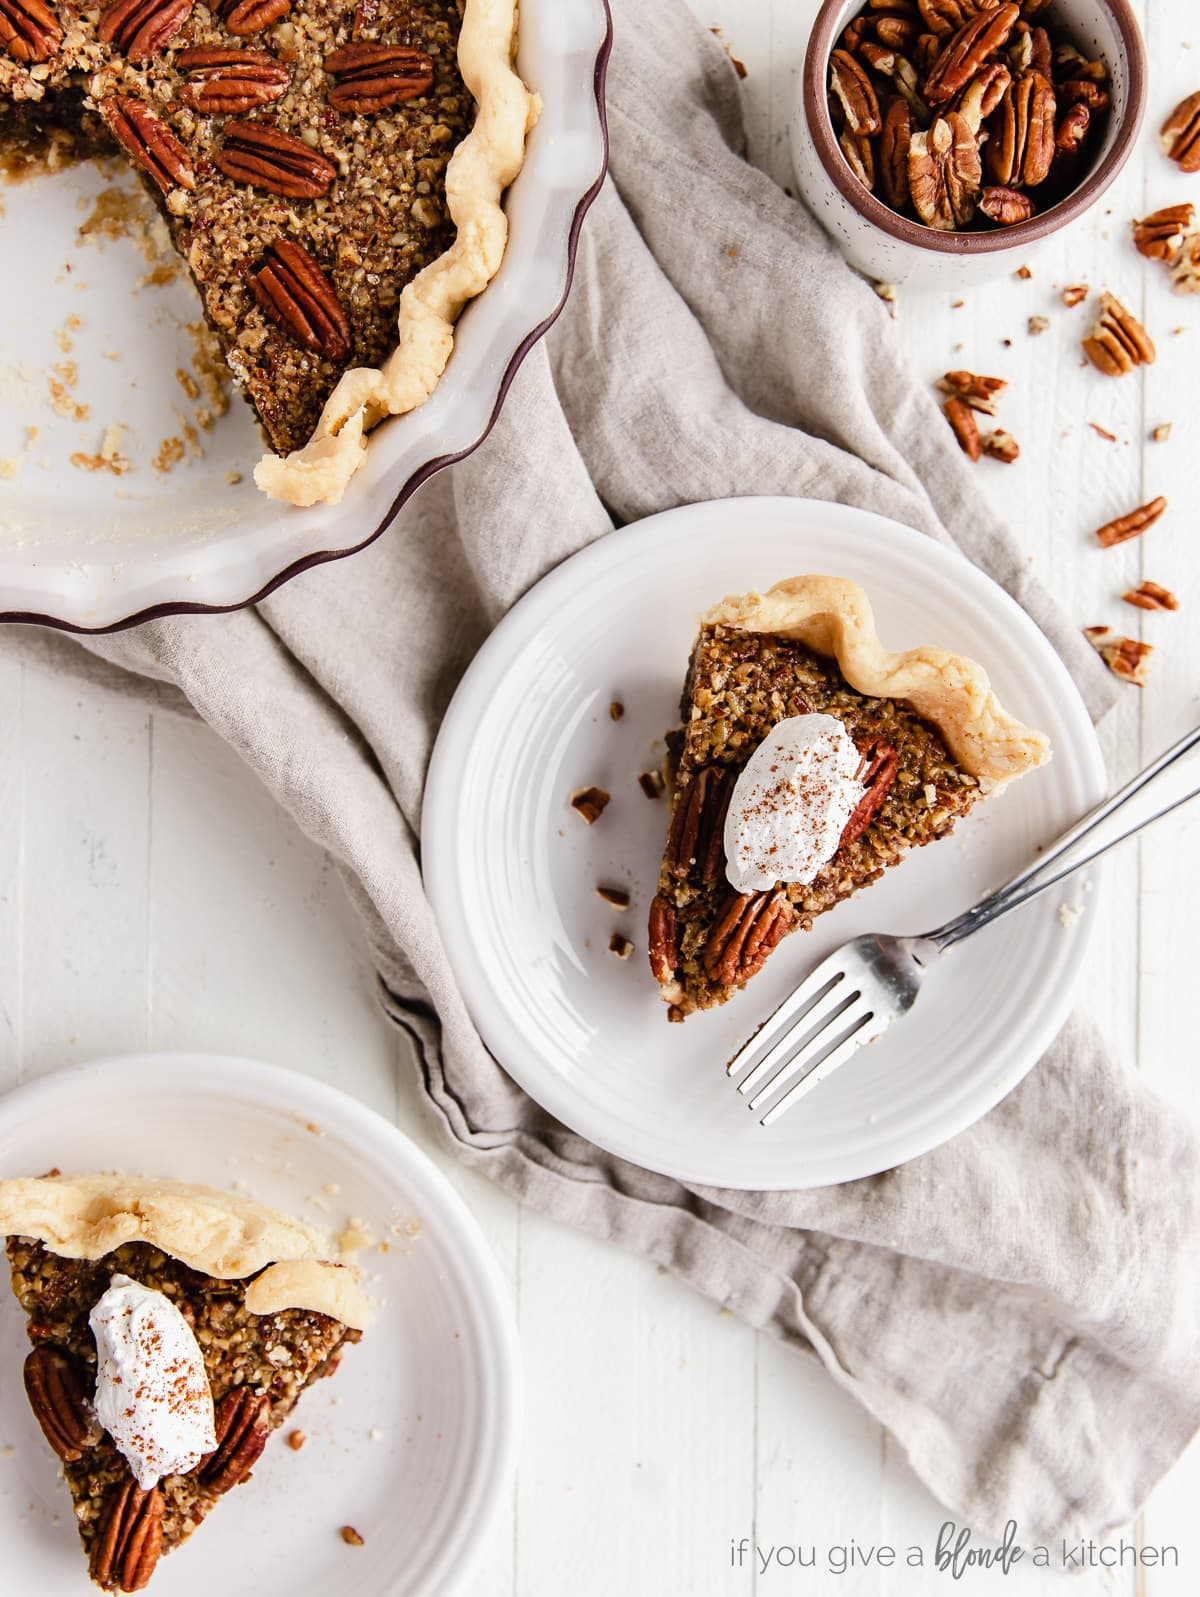 two slices of pecan pie with dollop of whipped cream on round white plates